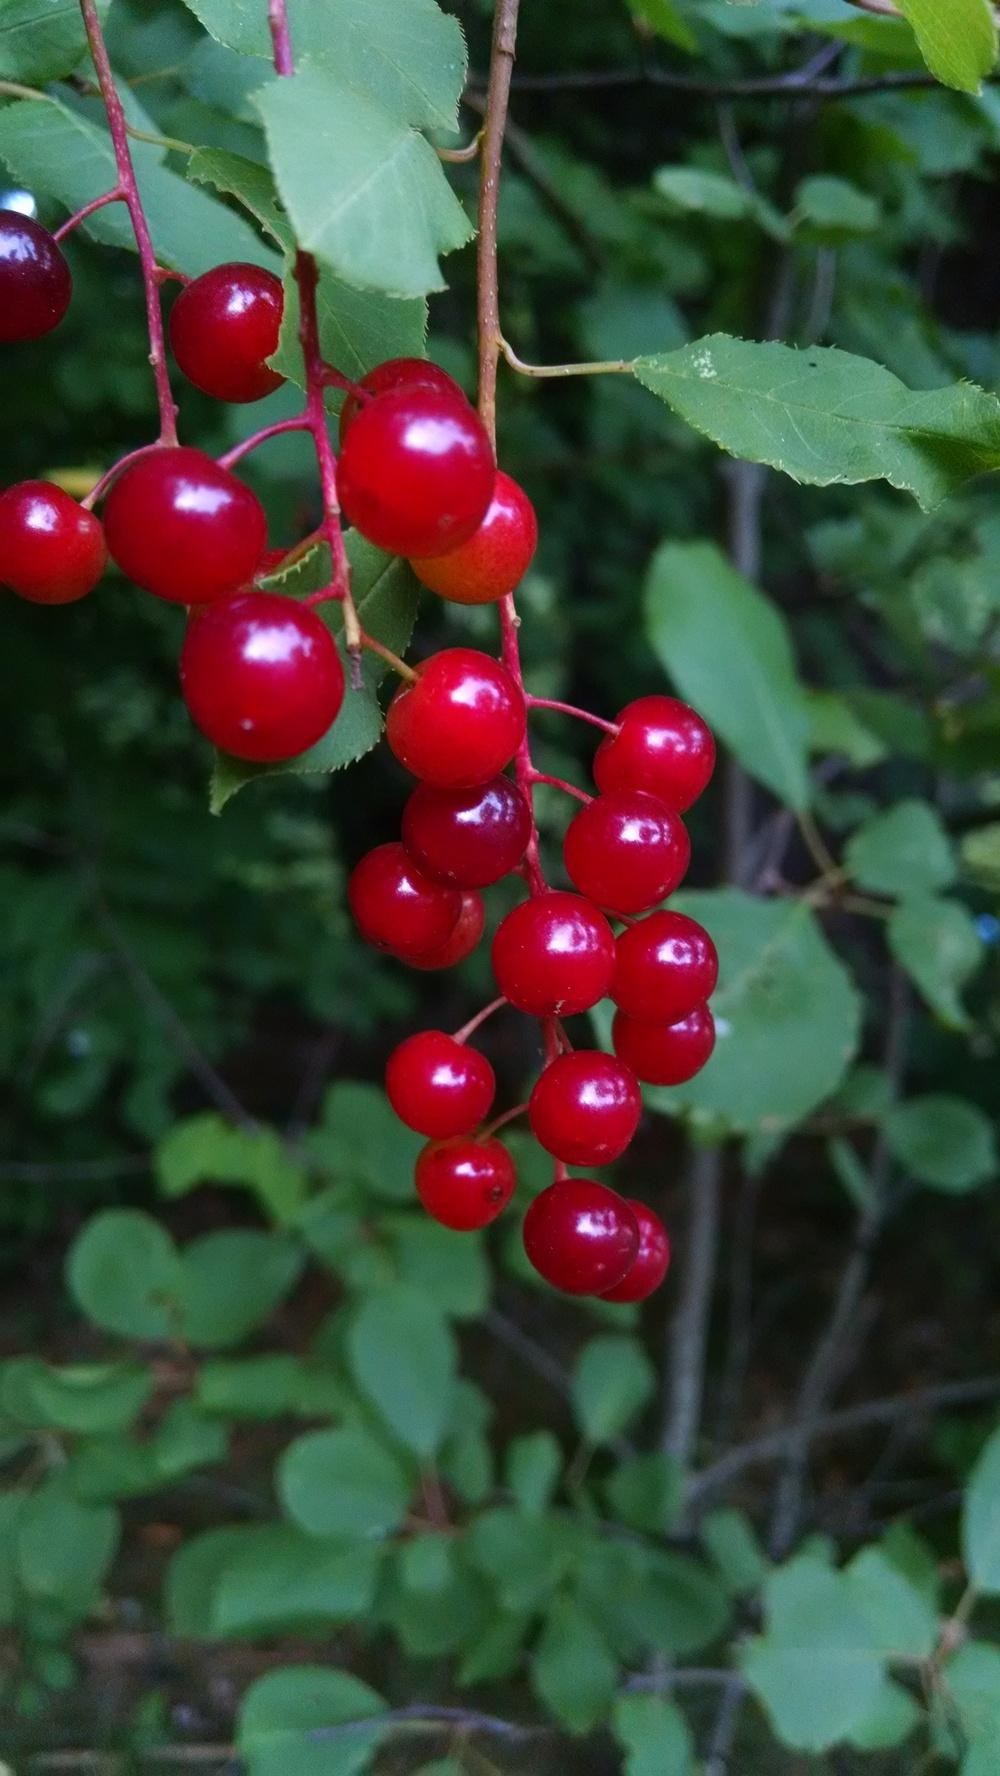 Sweet cherry: planting and caring for seedlings. Cherry varieties, photo 43